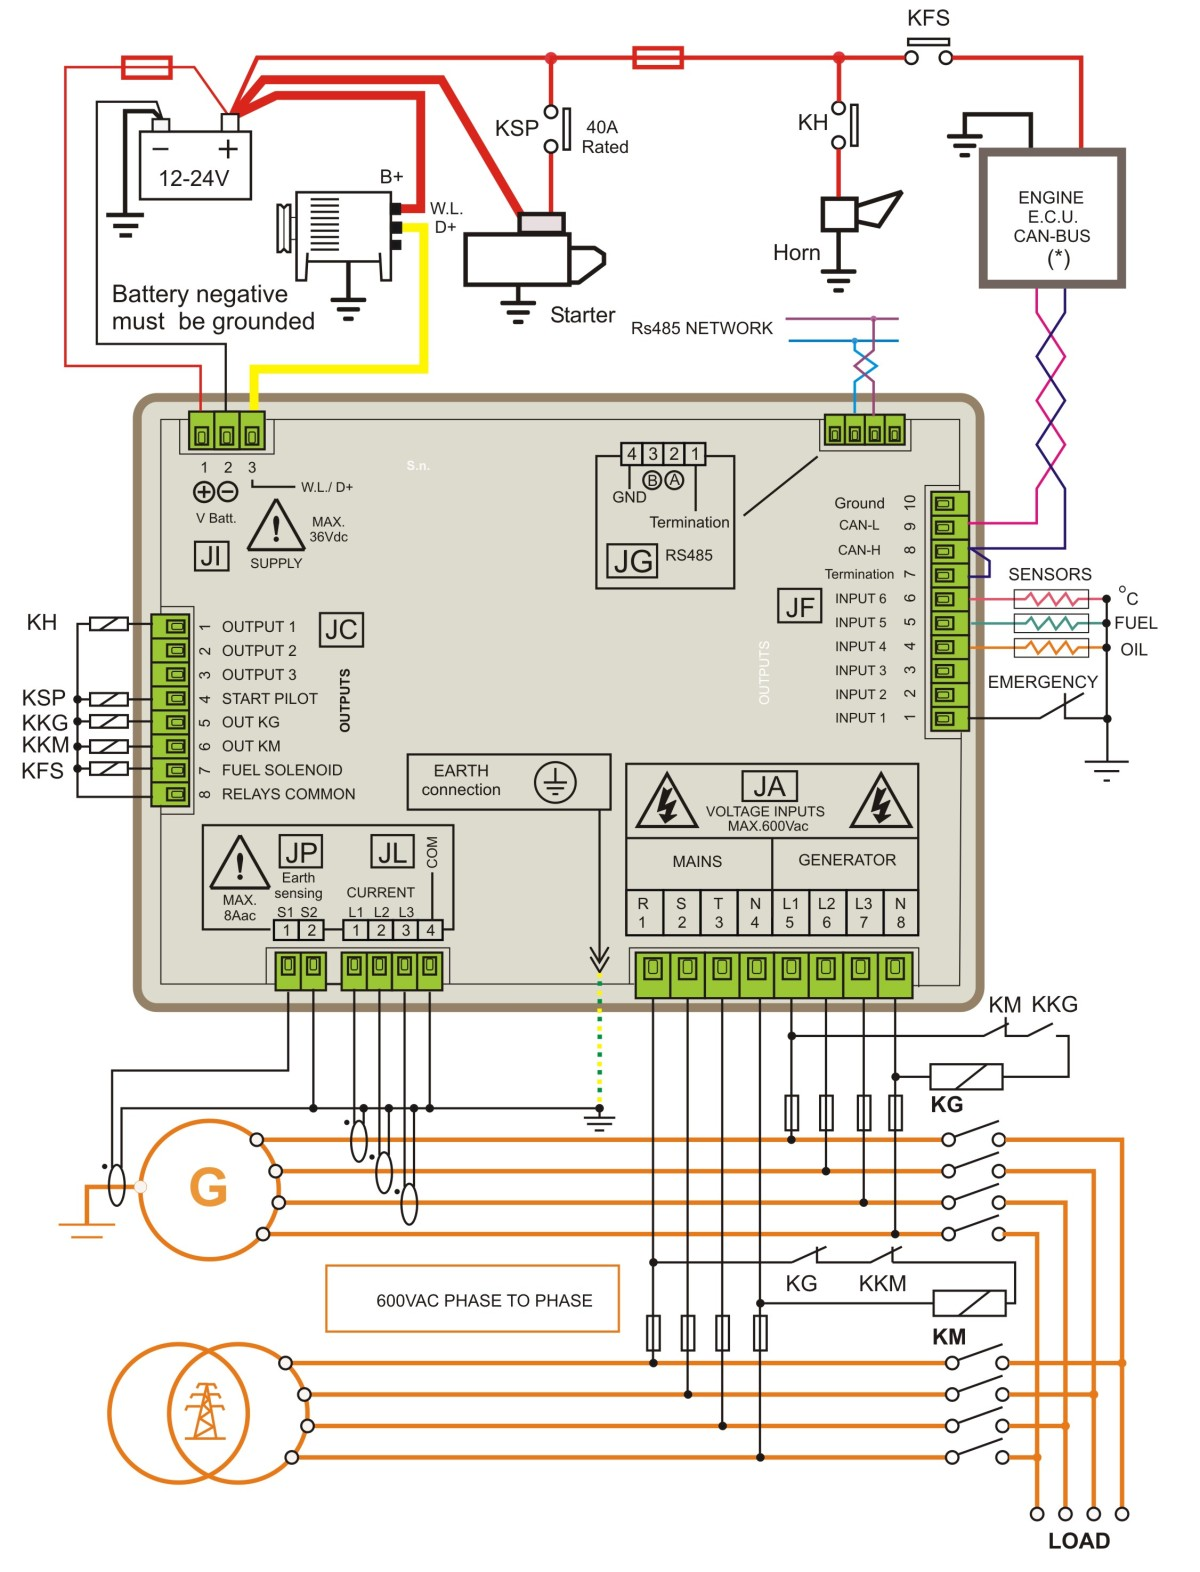 dc relay wiring diagram get free image about wiring diagram arc switch  panel wiring diagram switch panel wiring diagram 12v